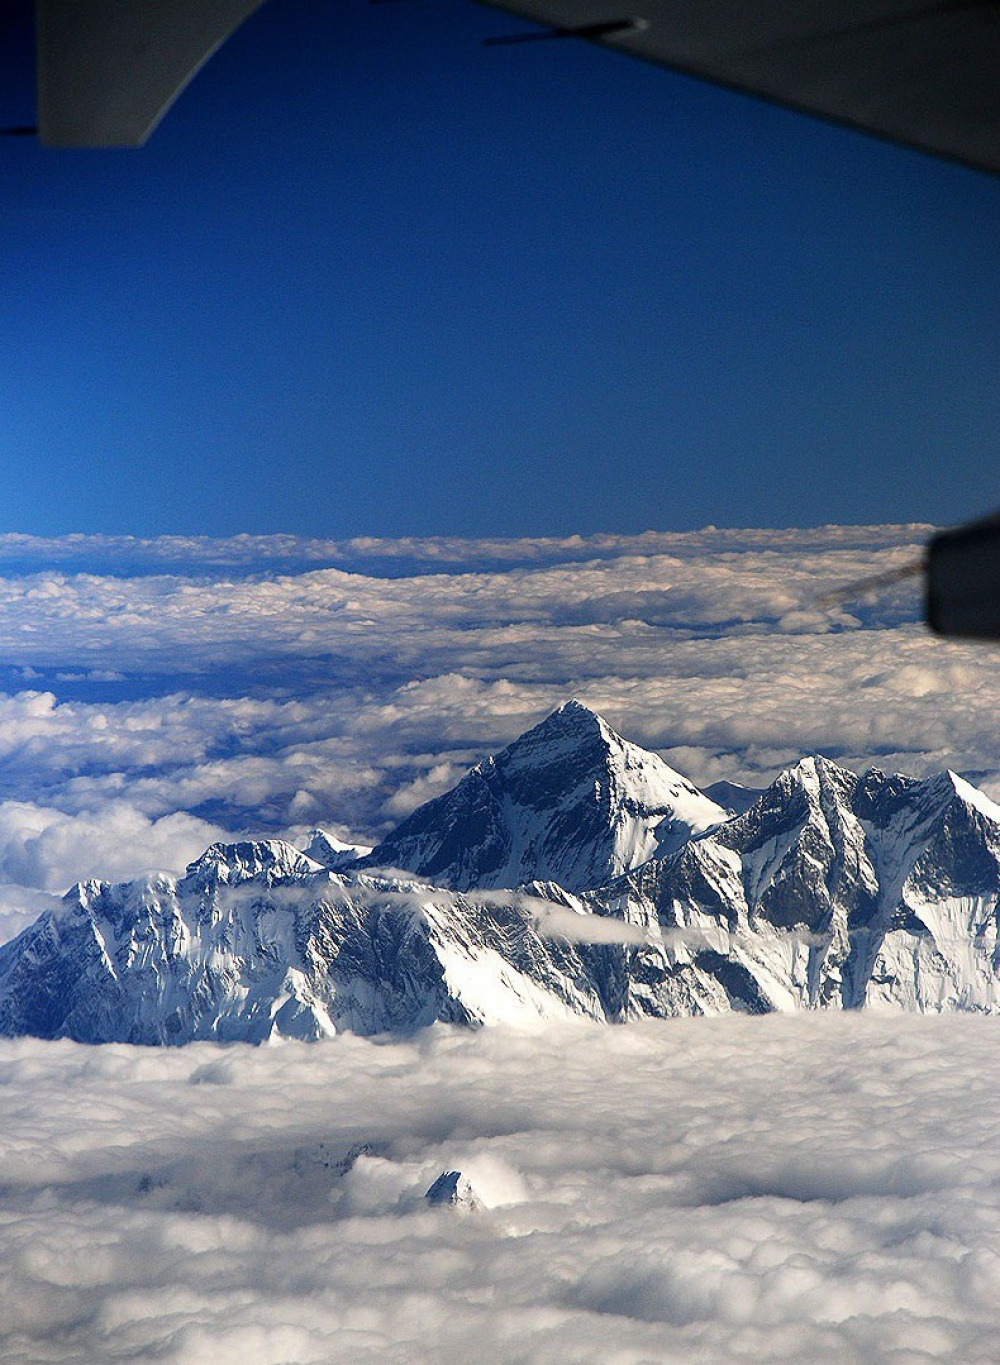 A view of Mount Everest from a plane